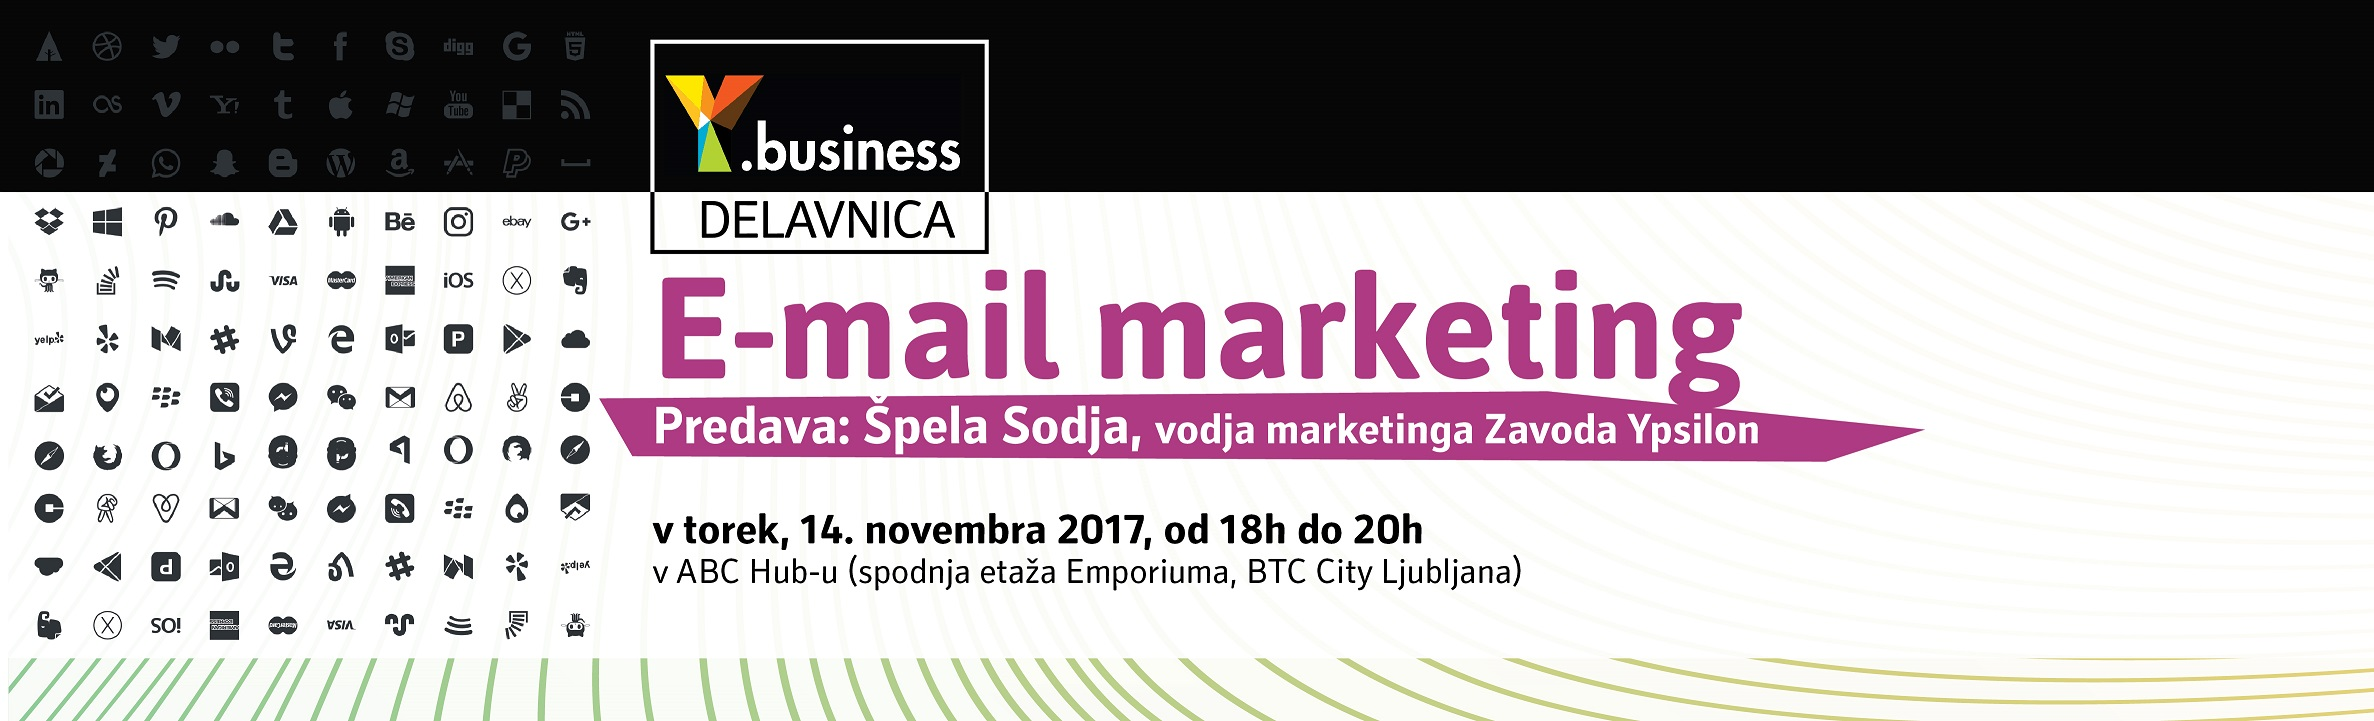 delavnice1 04 small email marketing